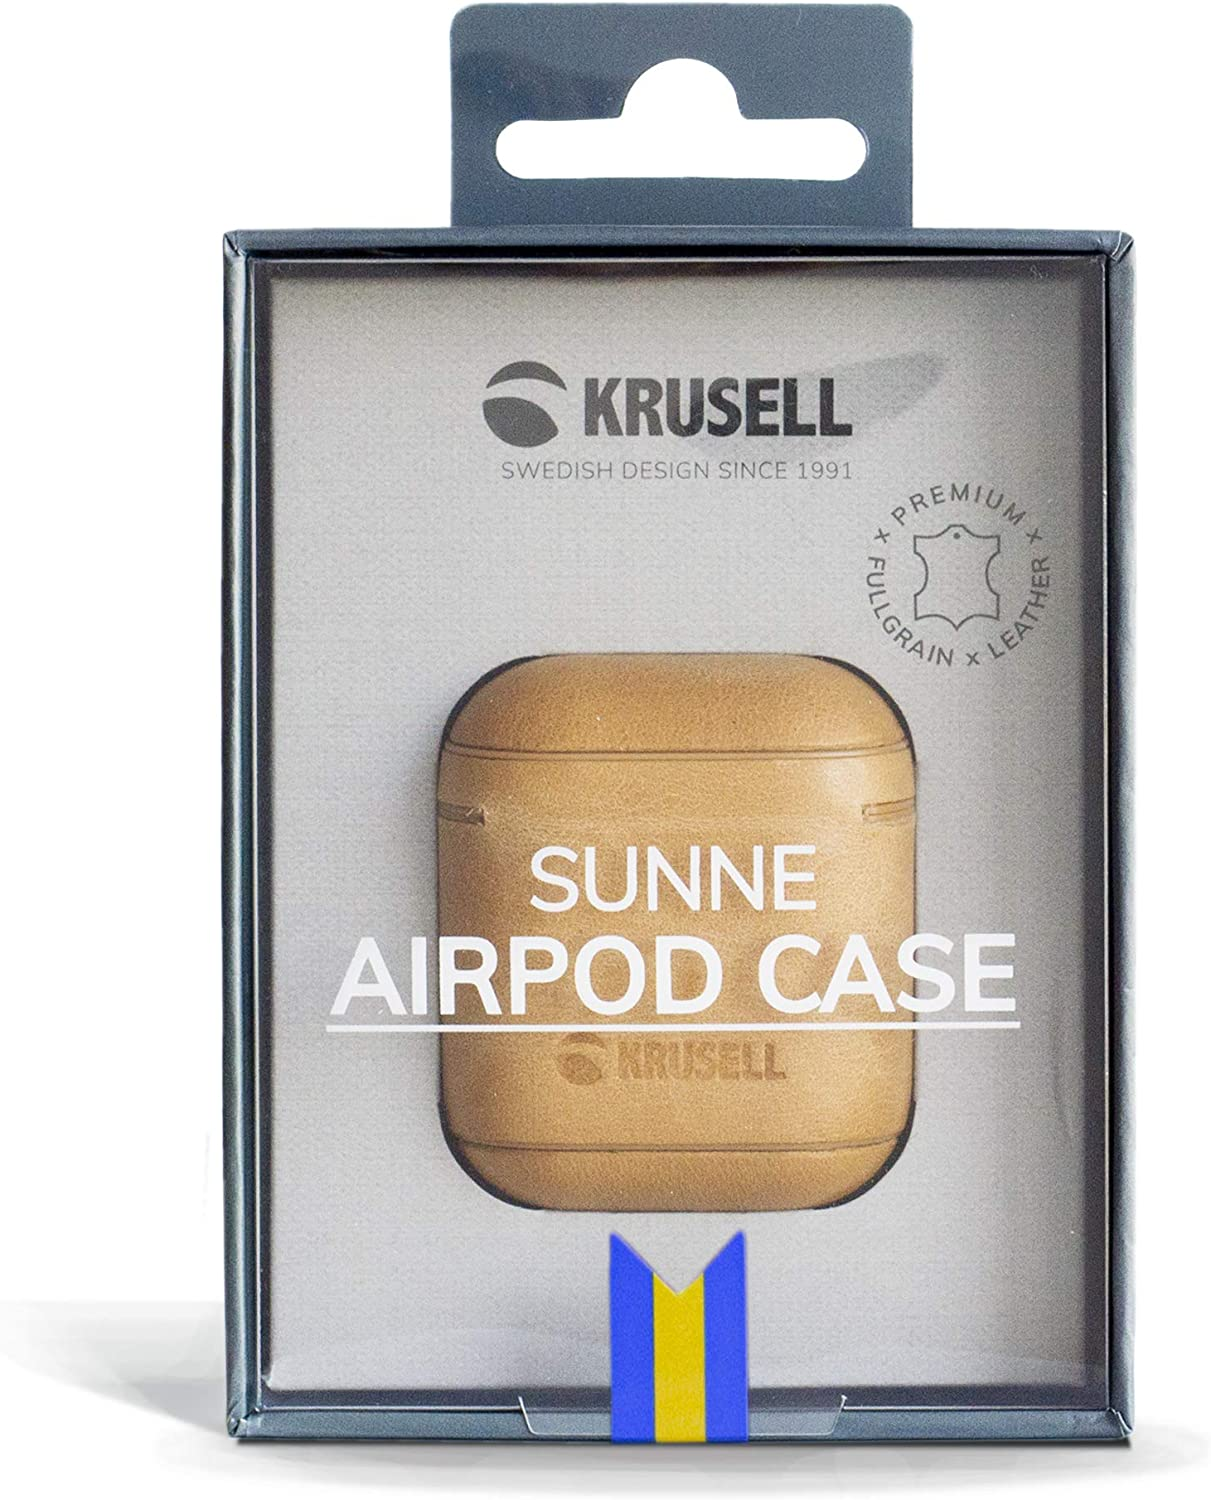 Krusell Sunne AirPod Case Apple AirPods Vintage Nude